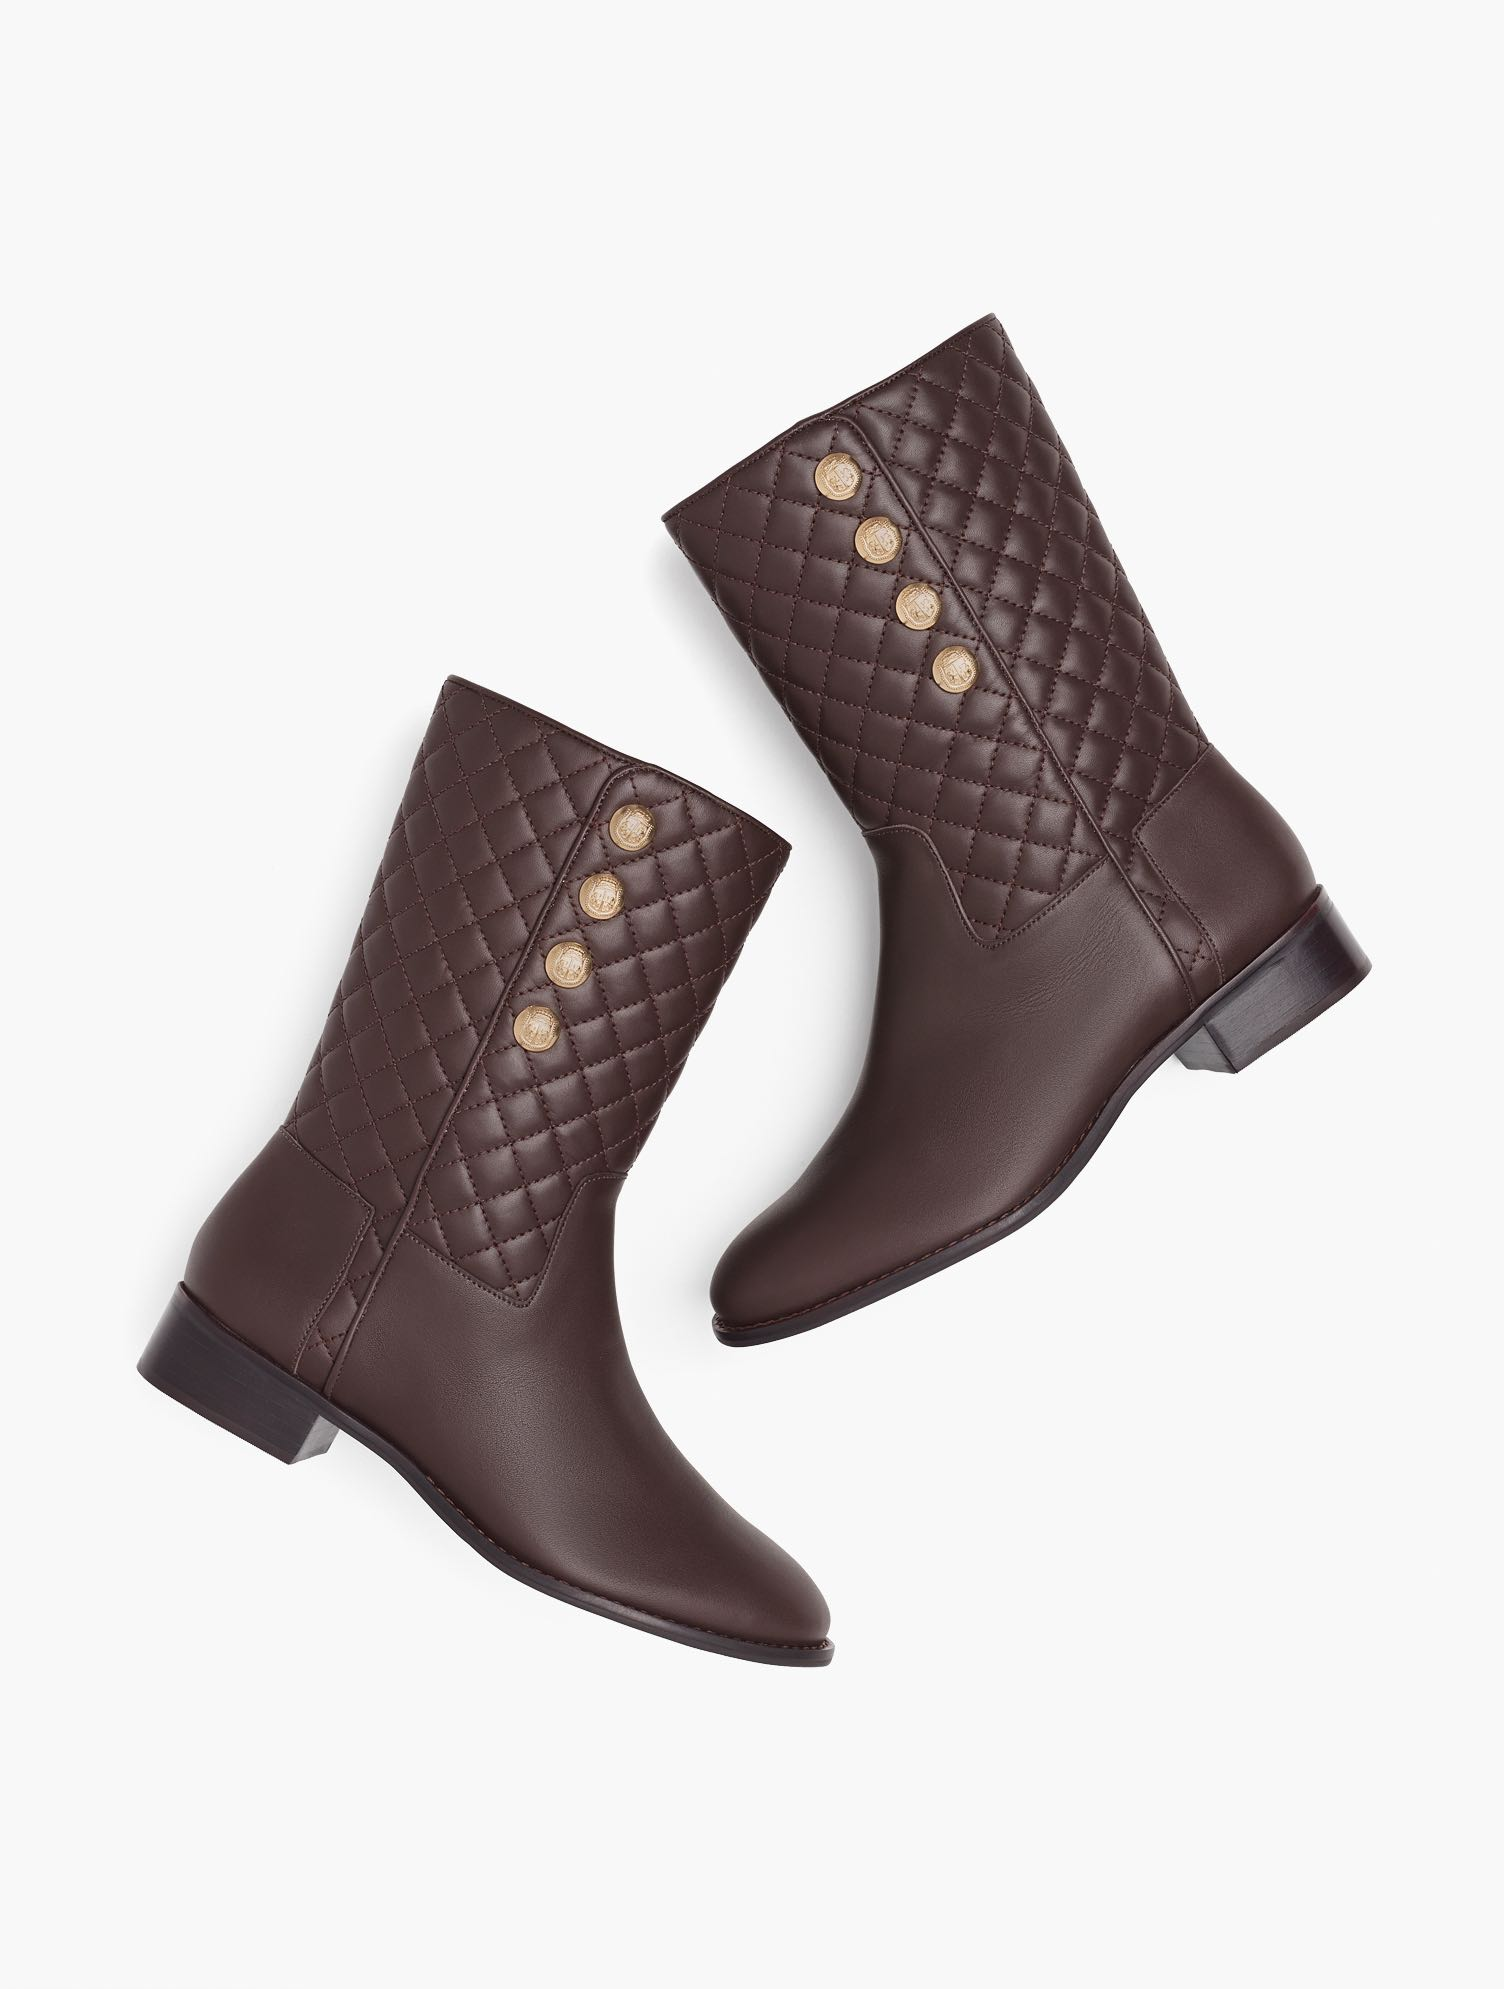 Simply classic. Tish mid-calf boots in Vachetta leather. Featuring easy side zip styling and chic gold button detail. Features Gift Box/Gift Wrap is not available for this item Round toe Side Zip 1.25 inches heel Non-skid sole 3Mm Memory Foam Imported Material: 100% Leather Tish Quilted Mid-Calf Boots - Vachetta - Chocolate - 11M Talbots